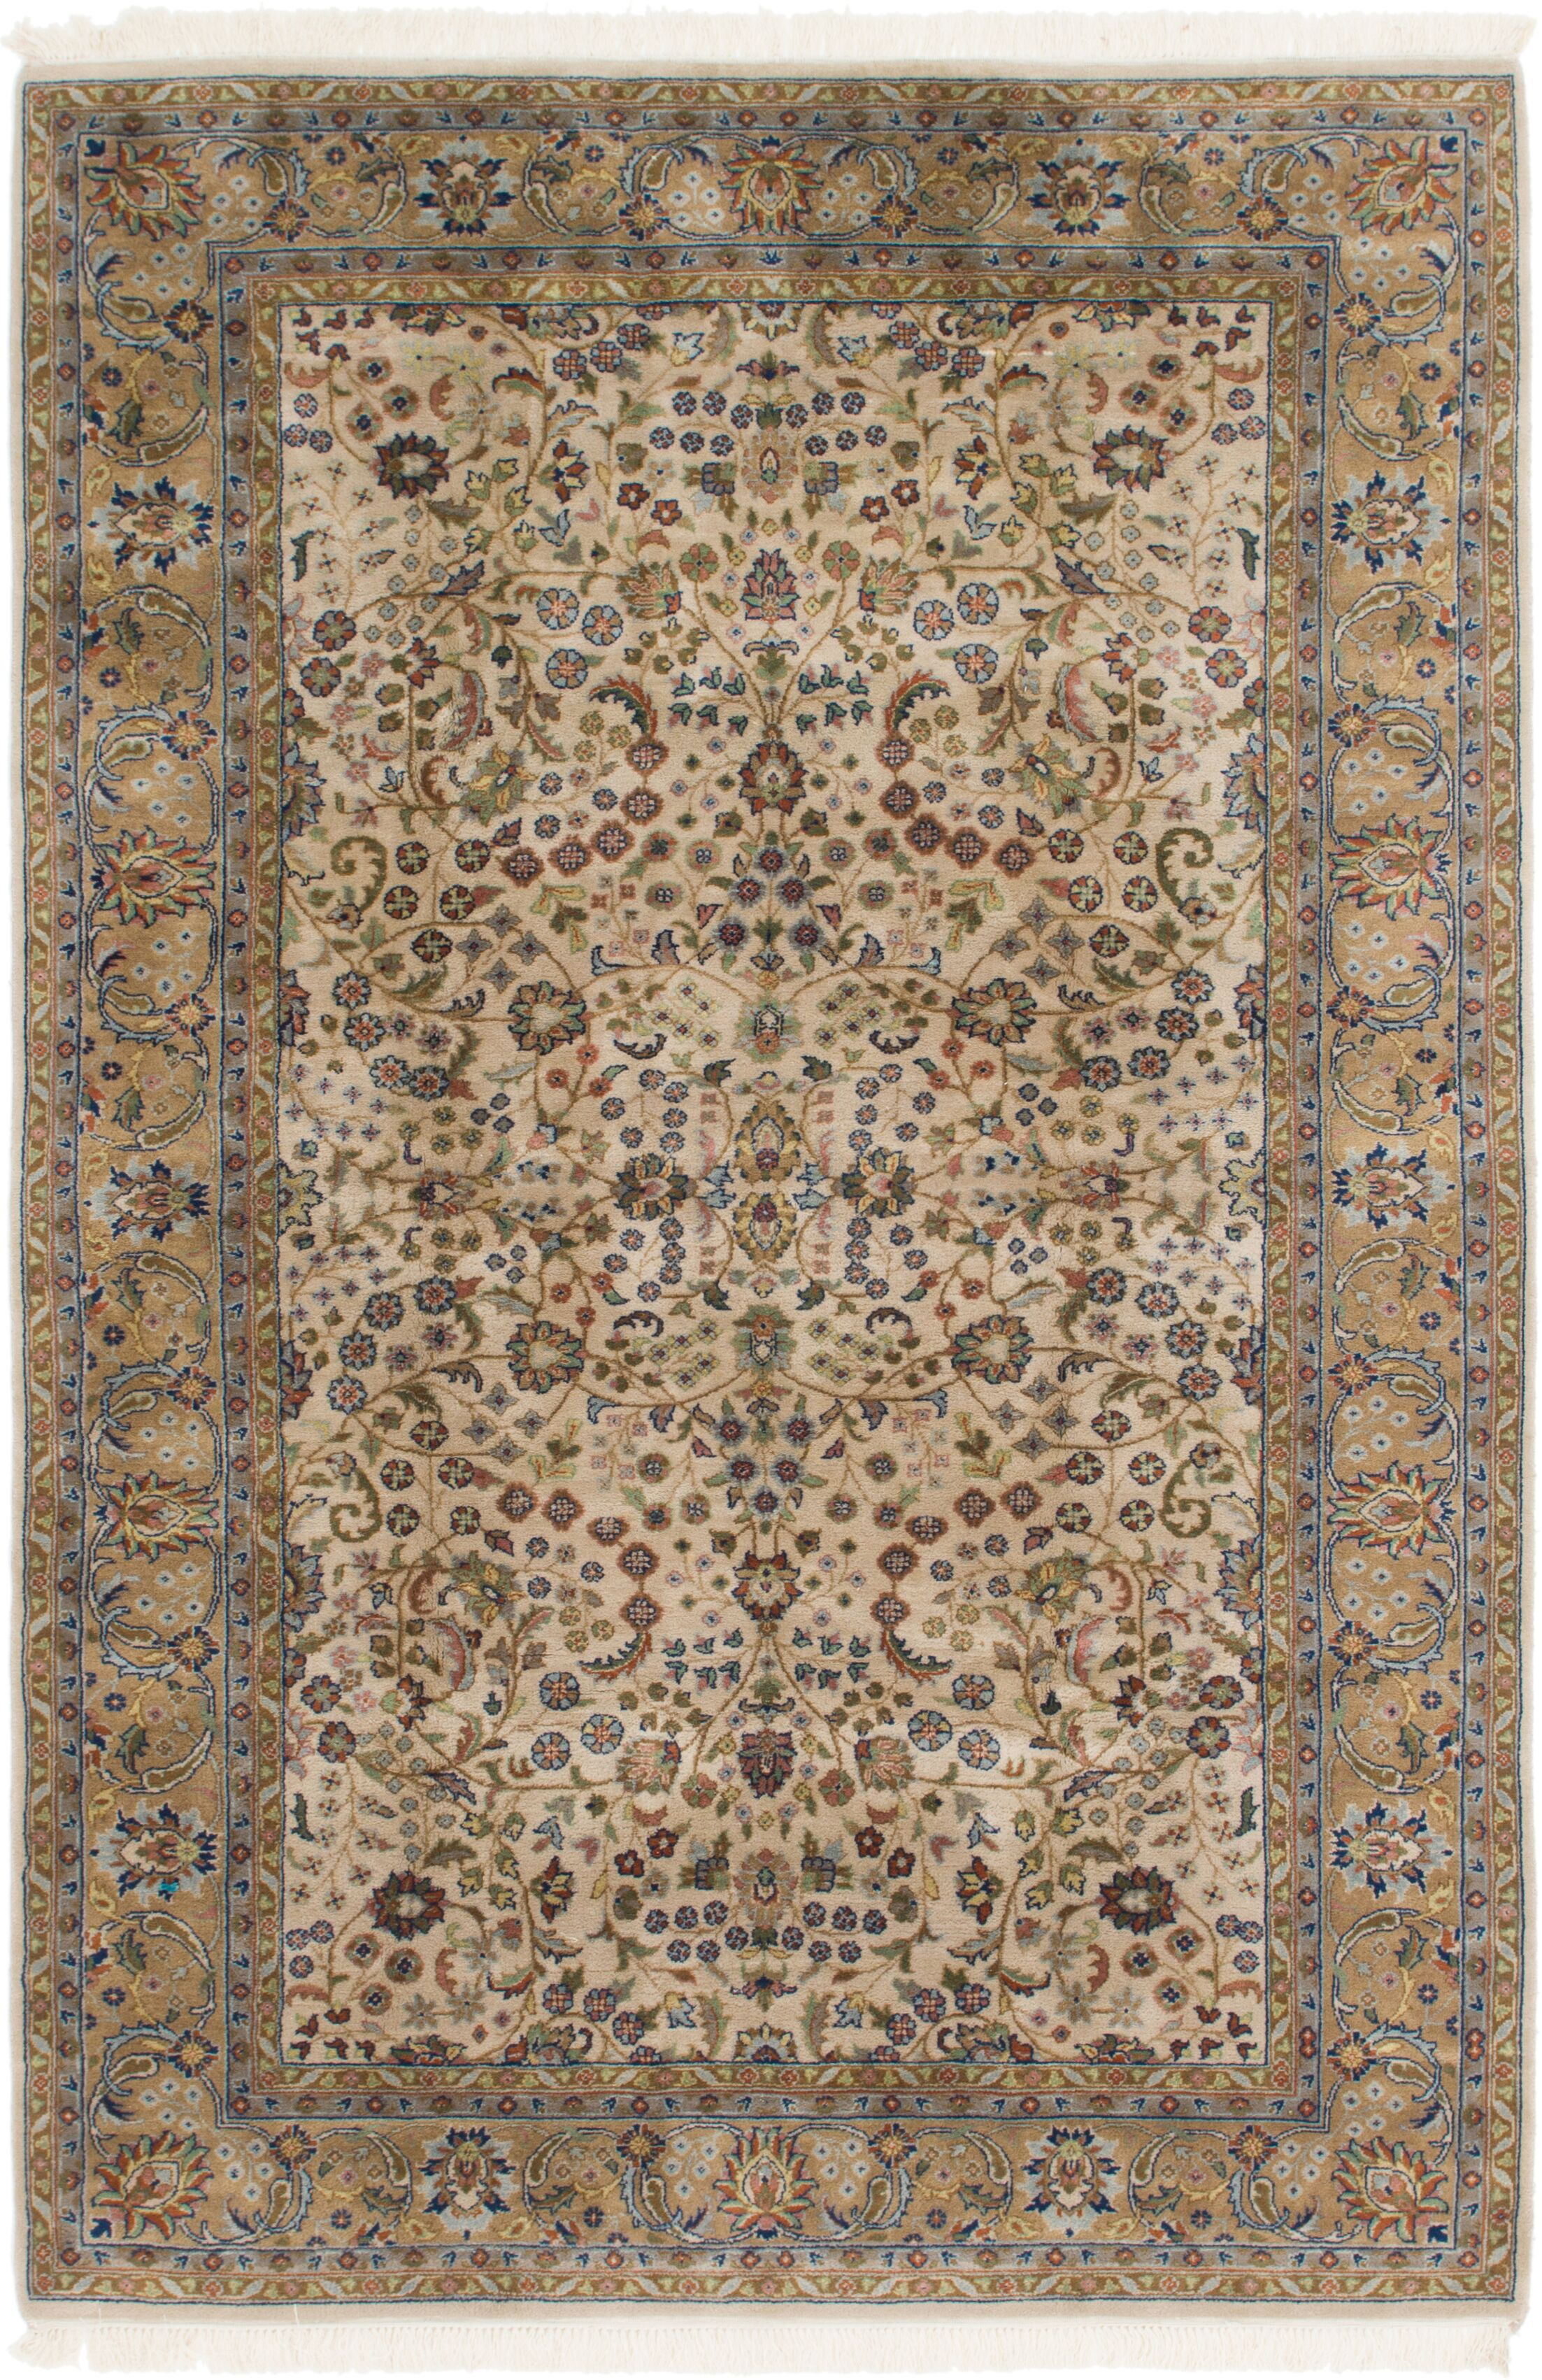 One-of-a-Kind Sarough Hand-Knotted Wool Brown Area Rug